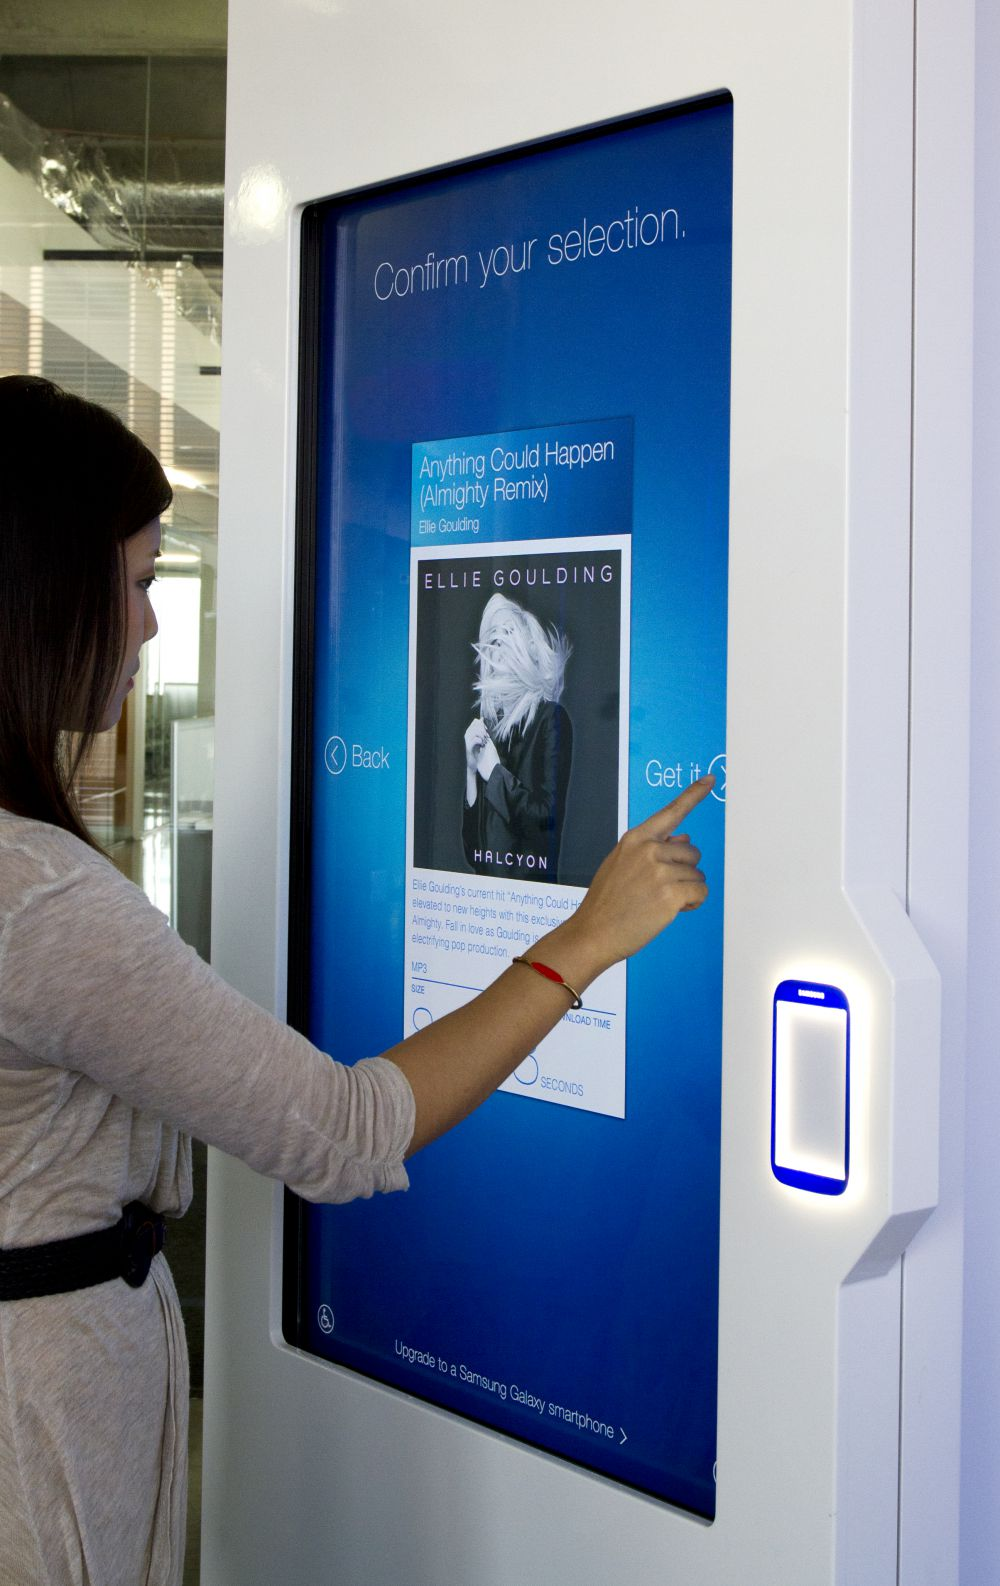 User selecting content to download via the Samsung NFC kiosk screen